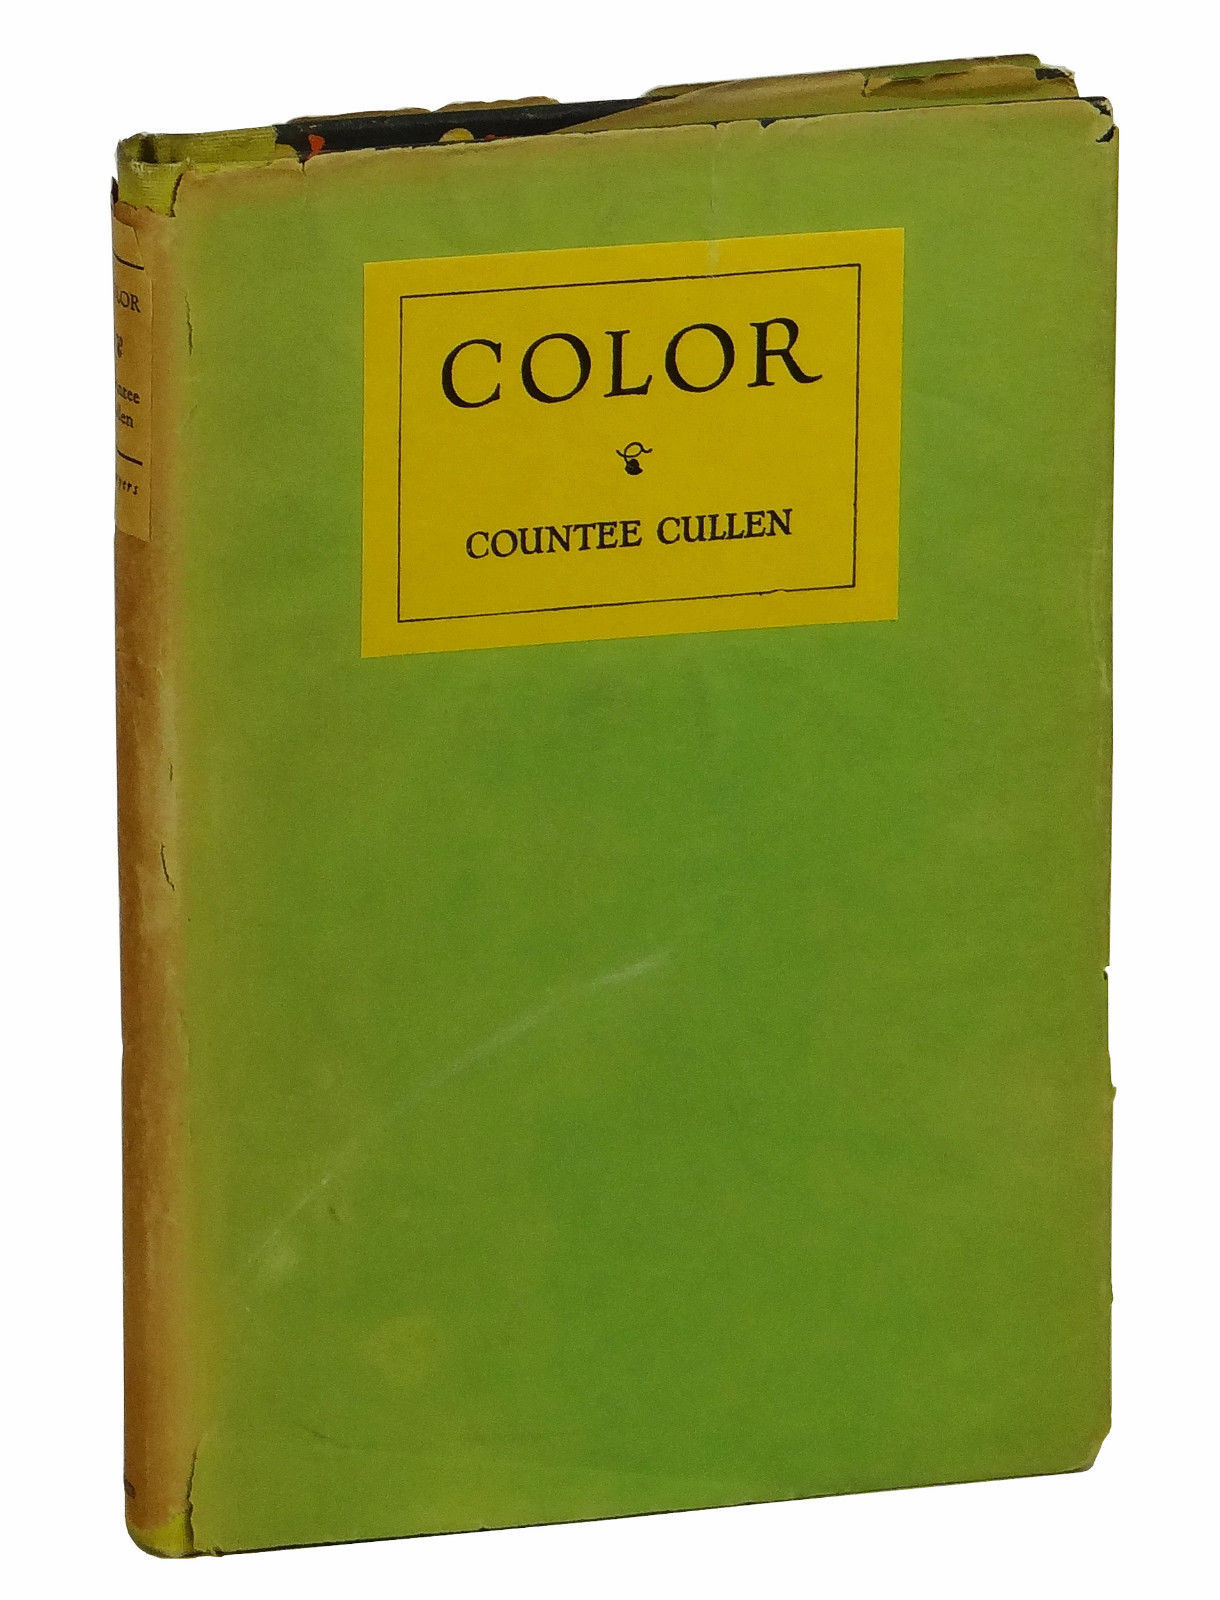 Color, Countee Cullen